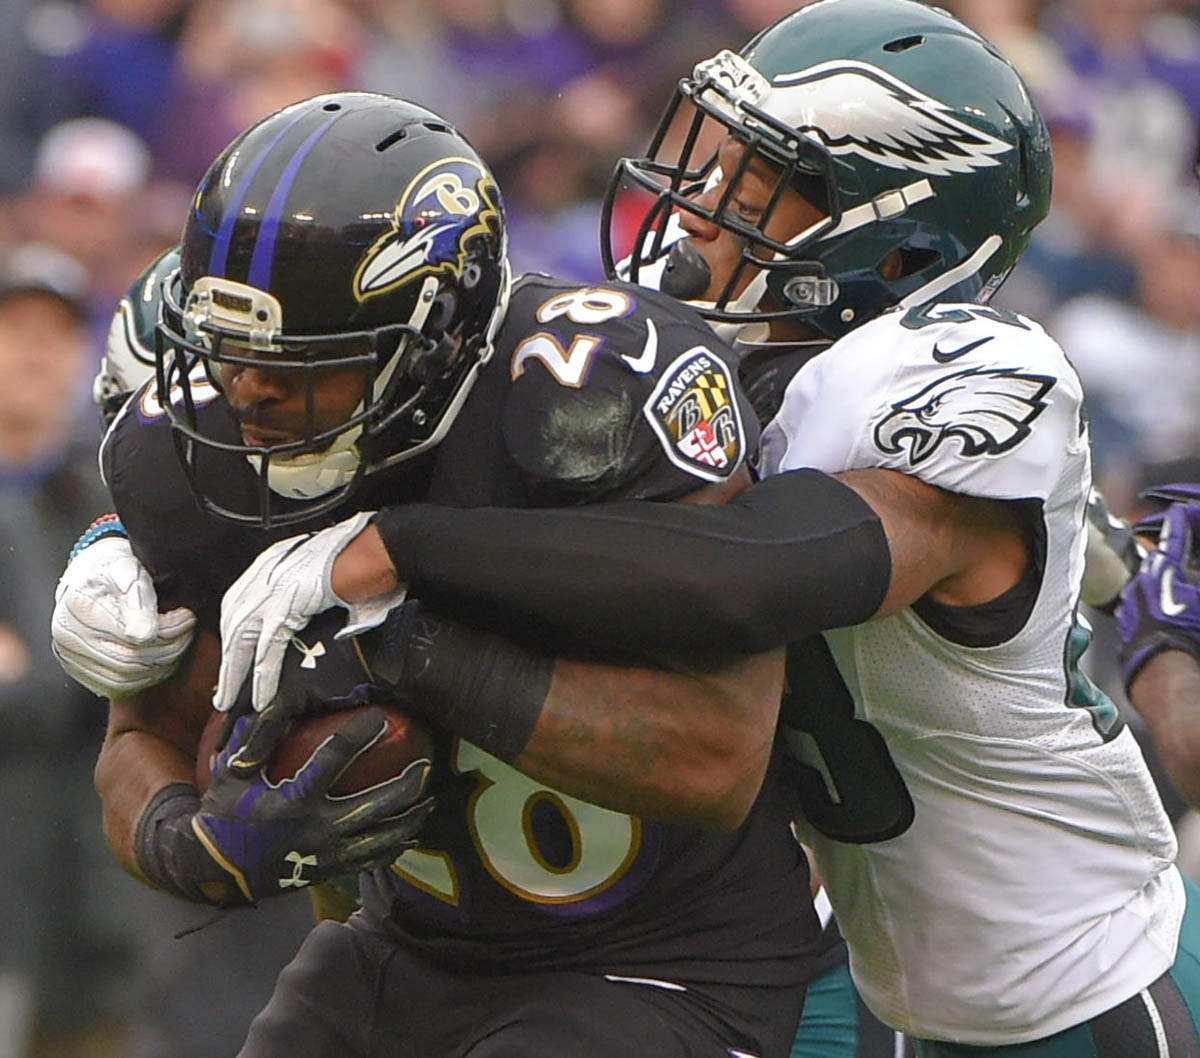 ravens vs eagles - photo #16